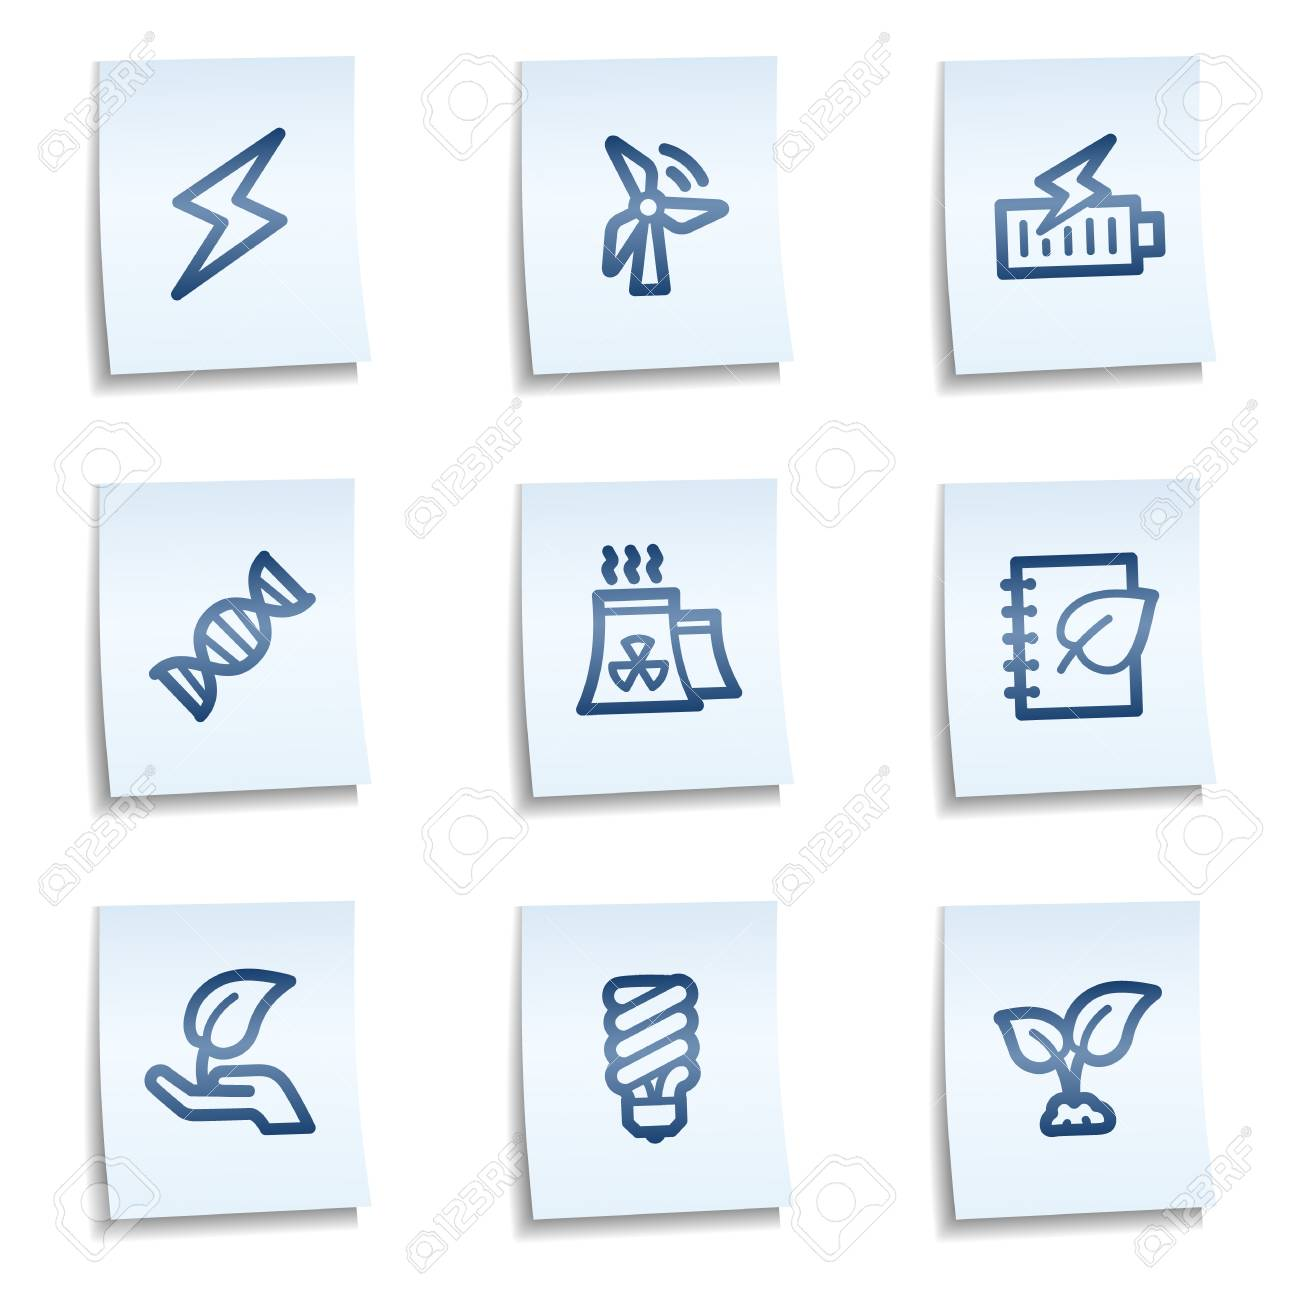 Ecology web icons set 5, blue notes Stock Vector - 9805255